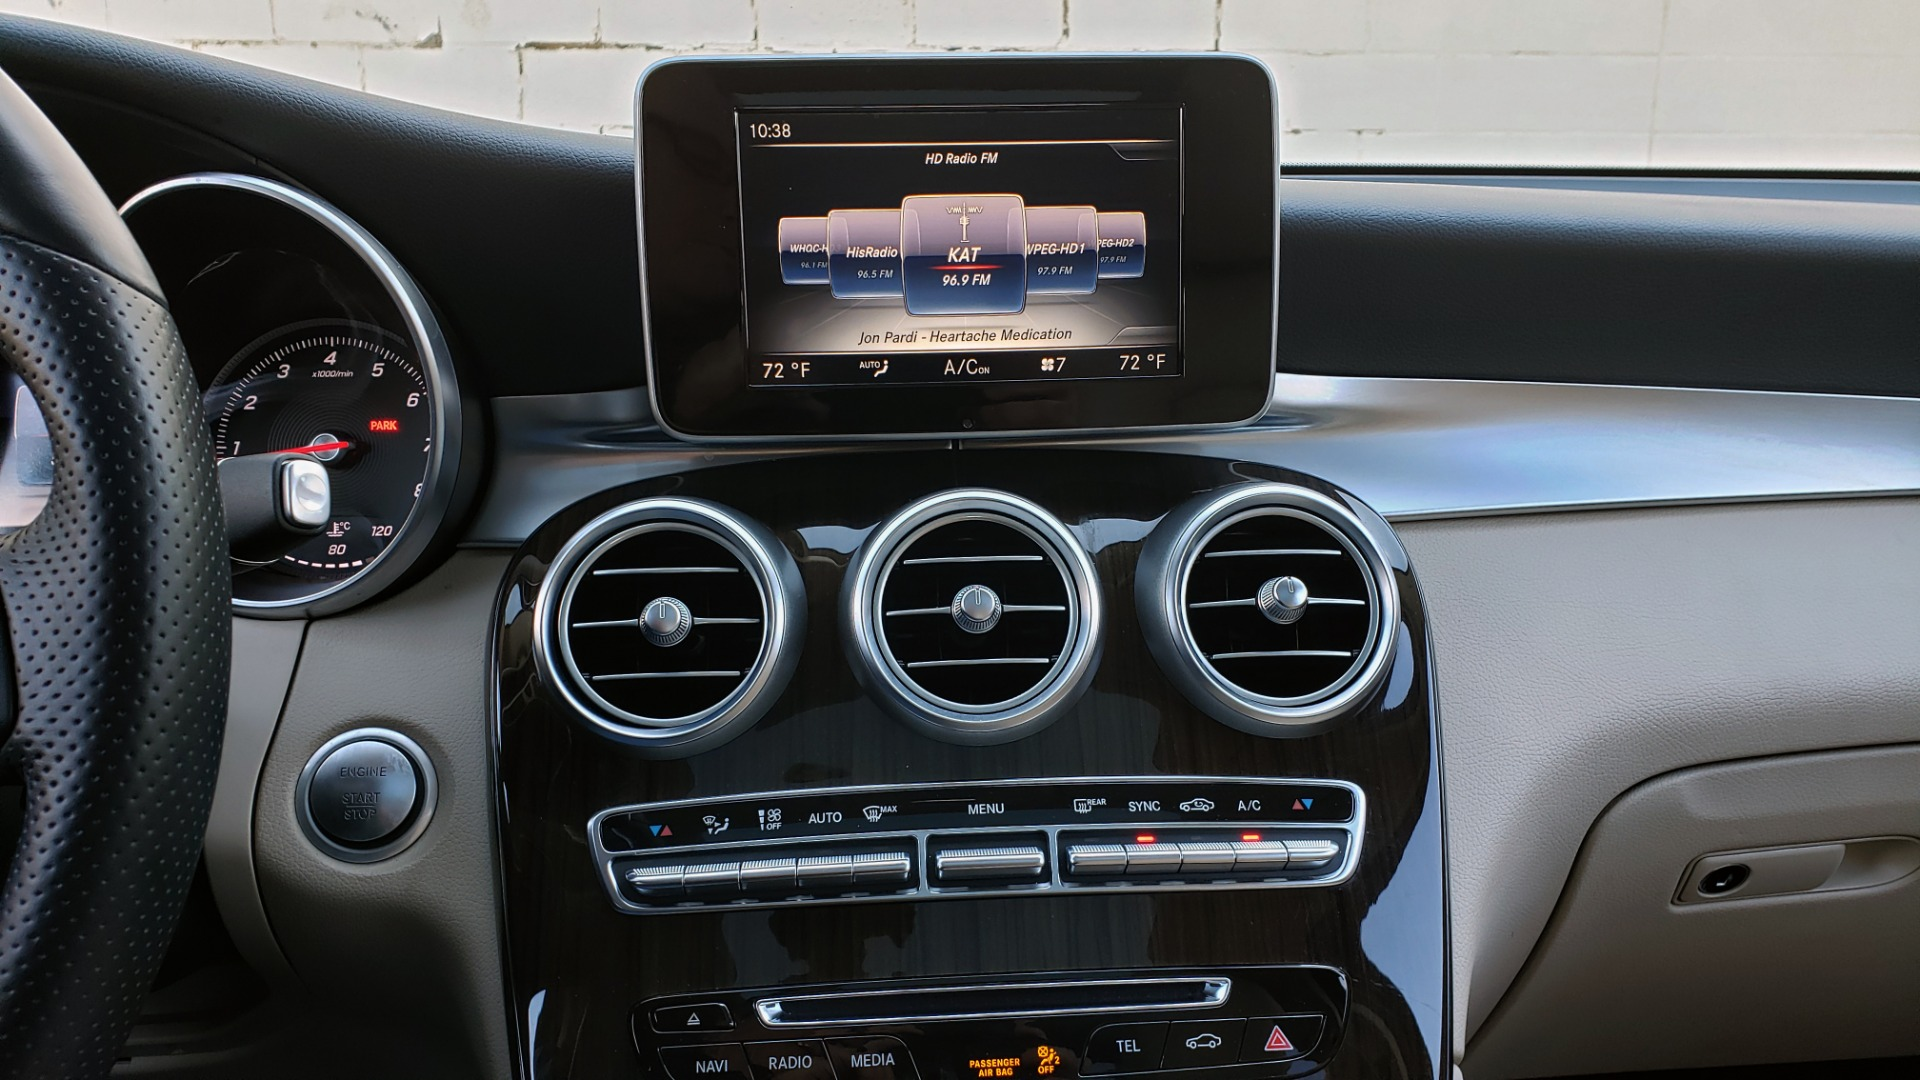 Used 2017 Mercedes-Benz GLC 300 4MATIC / PREM / NAV / KEYLESS-GO / SUNROOF / REARVIEW for sale Sold at Formula Imports in Charlotte NC 28227 39